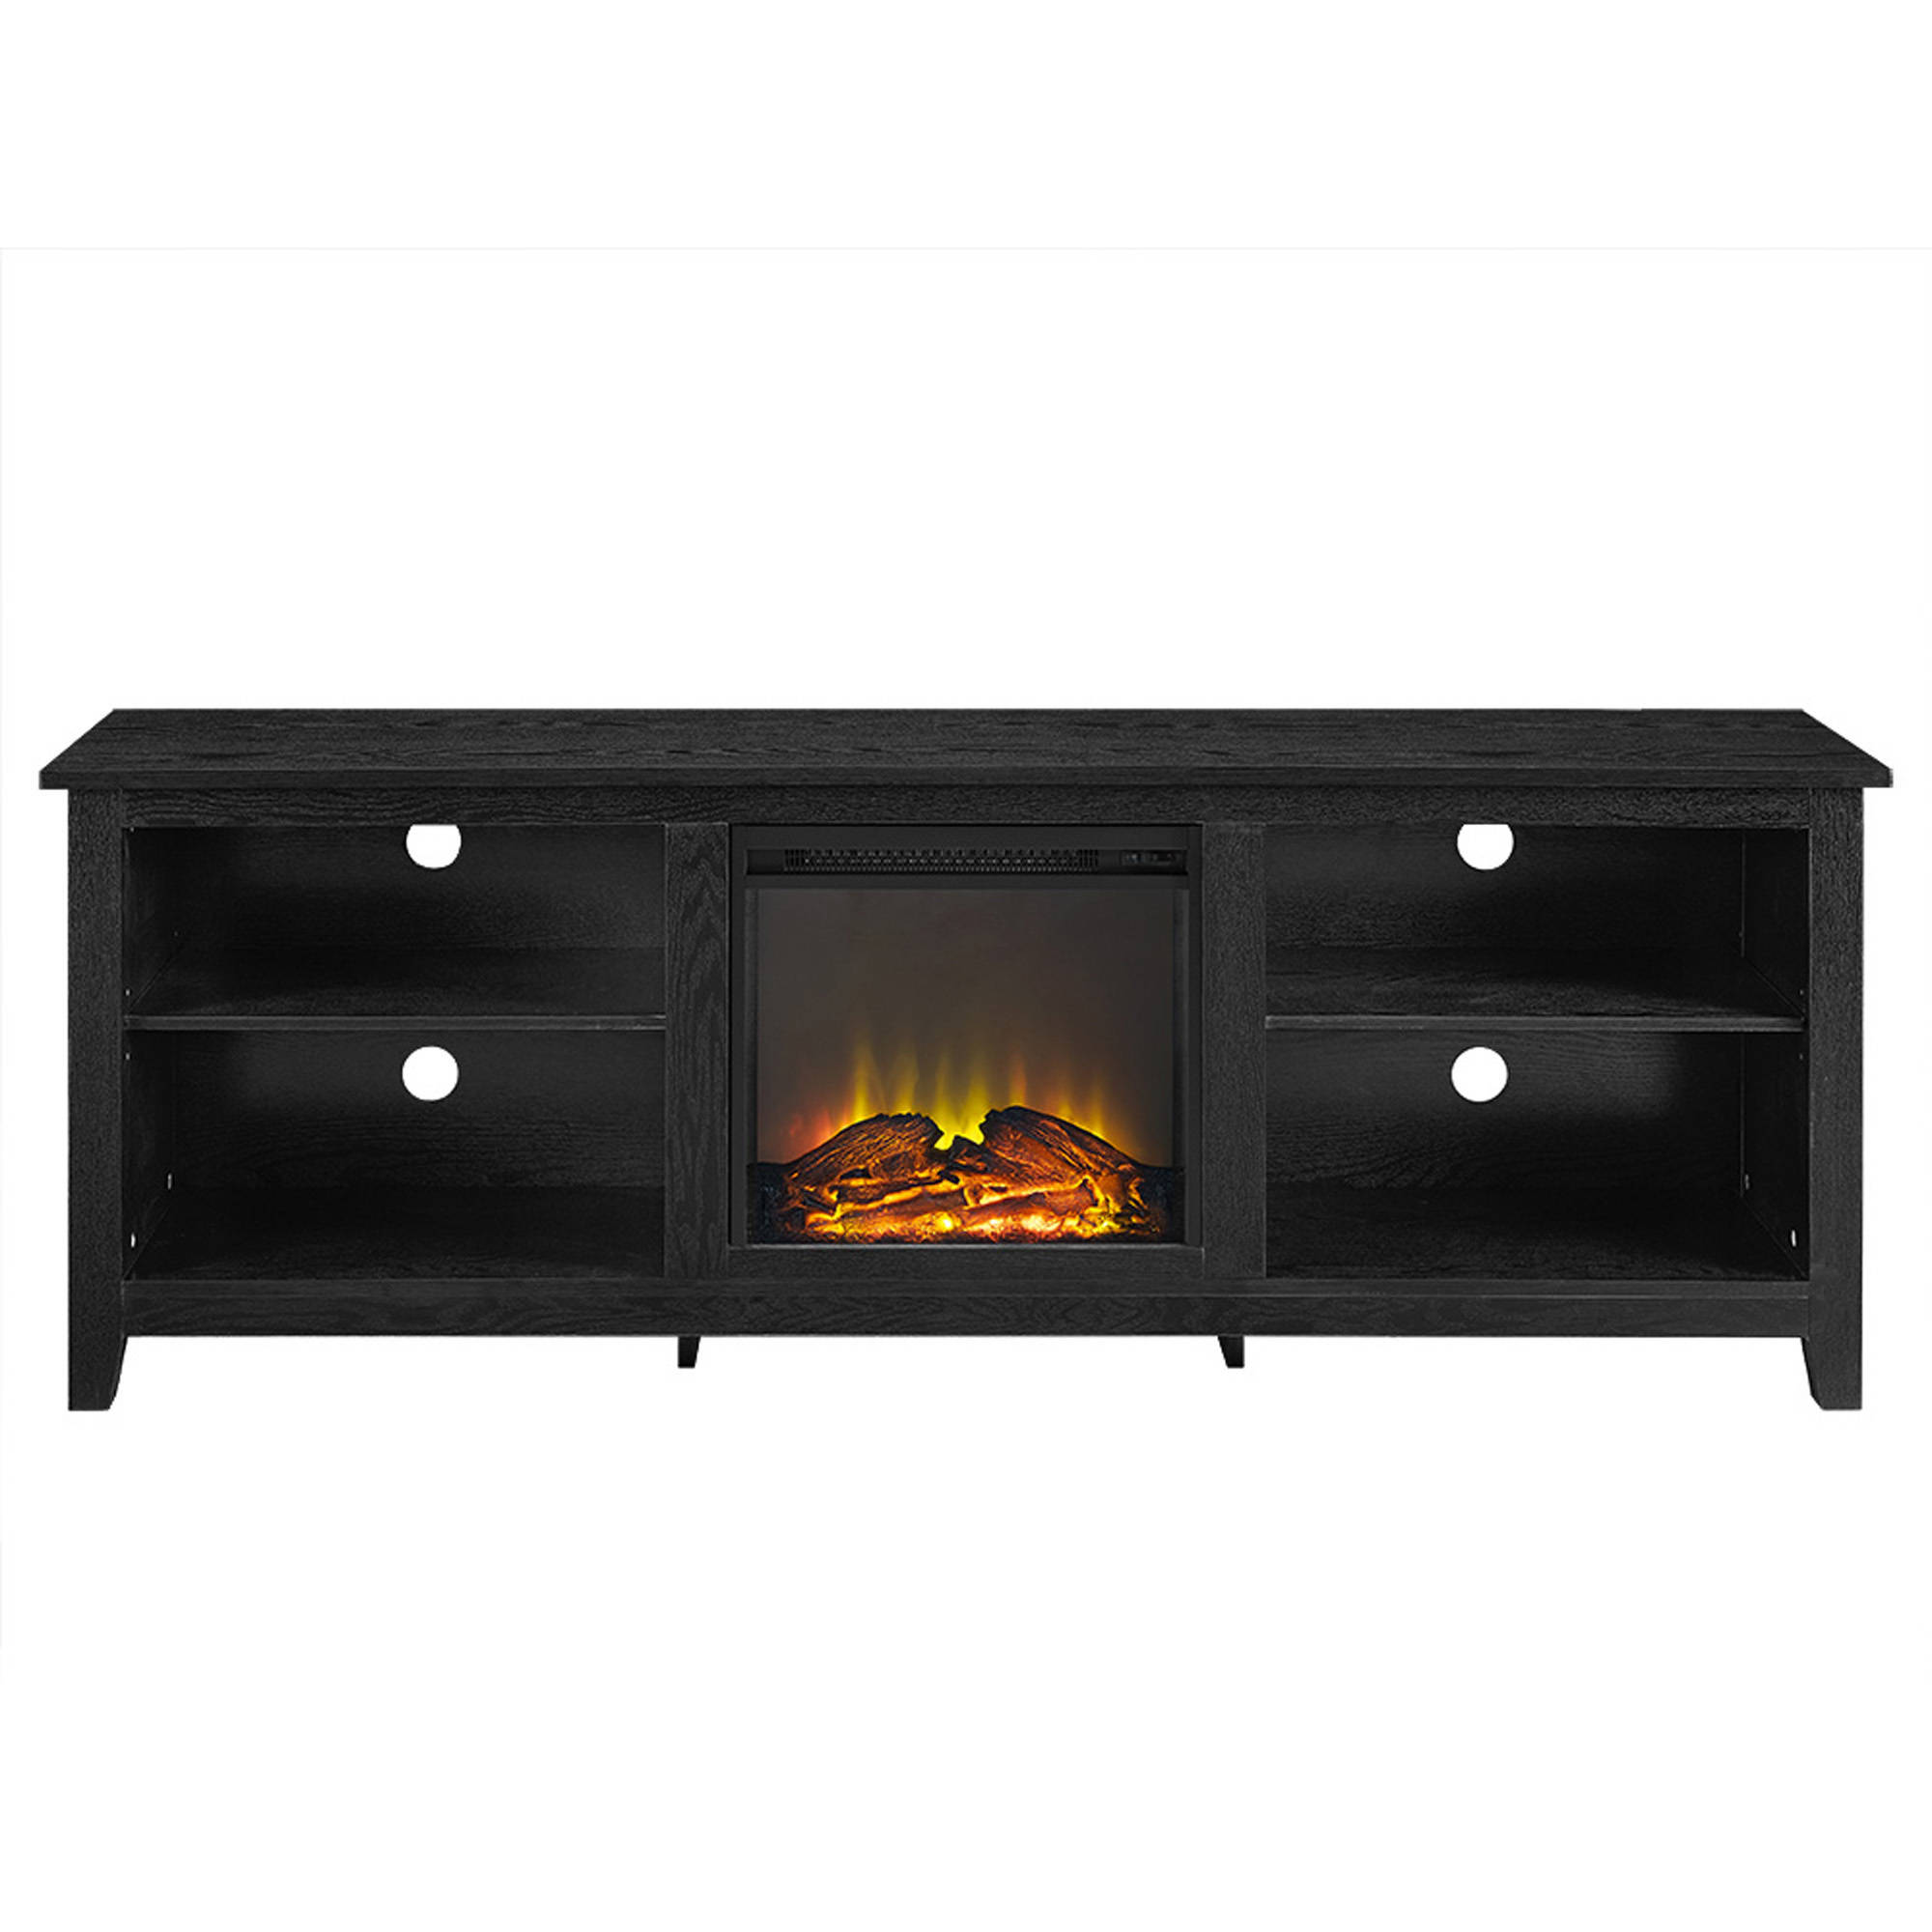 Walker Edison Wood Tv Stand With Fireplace For Tvs Up To